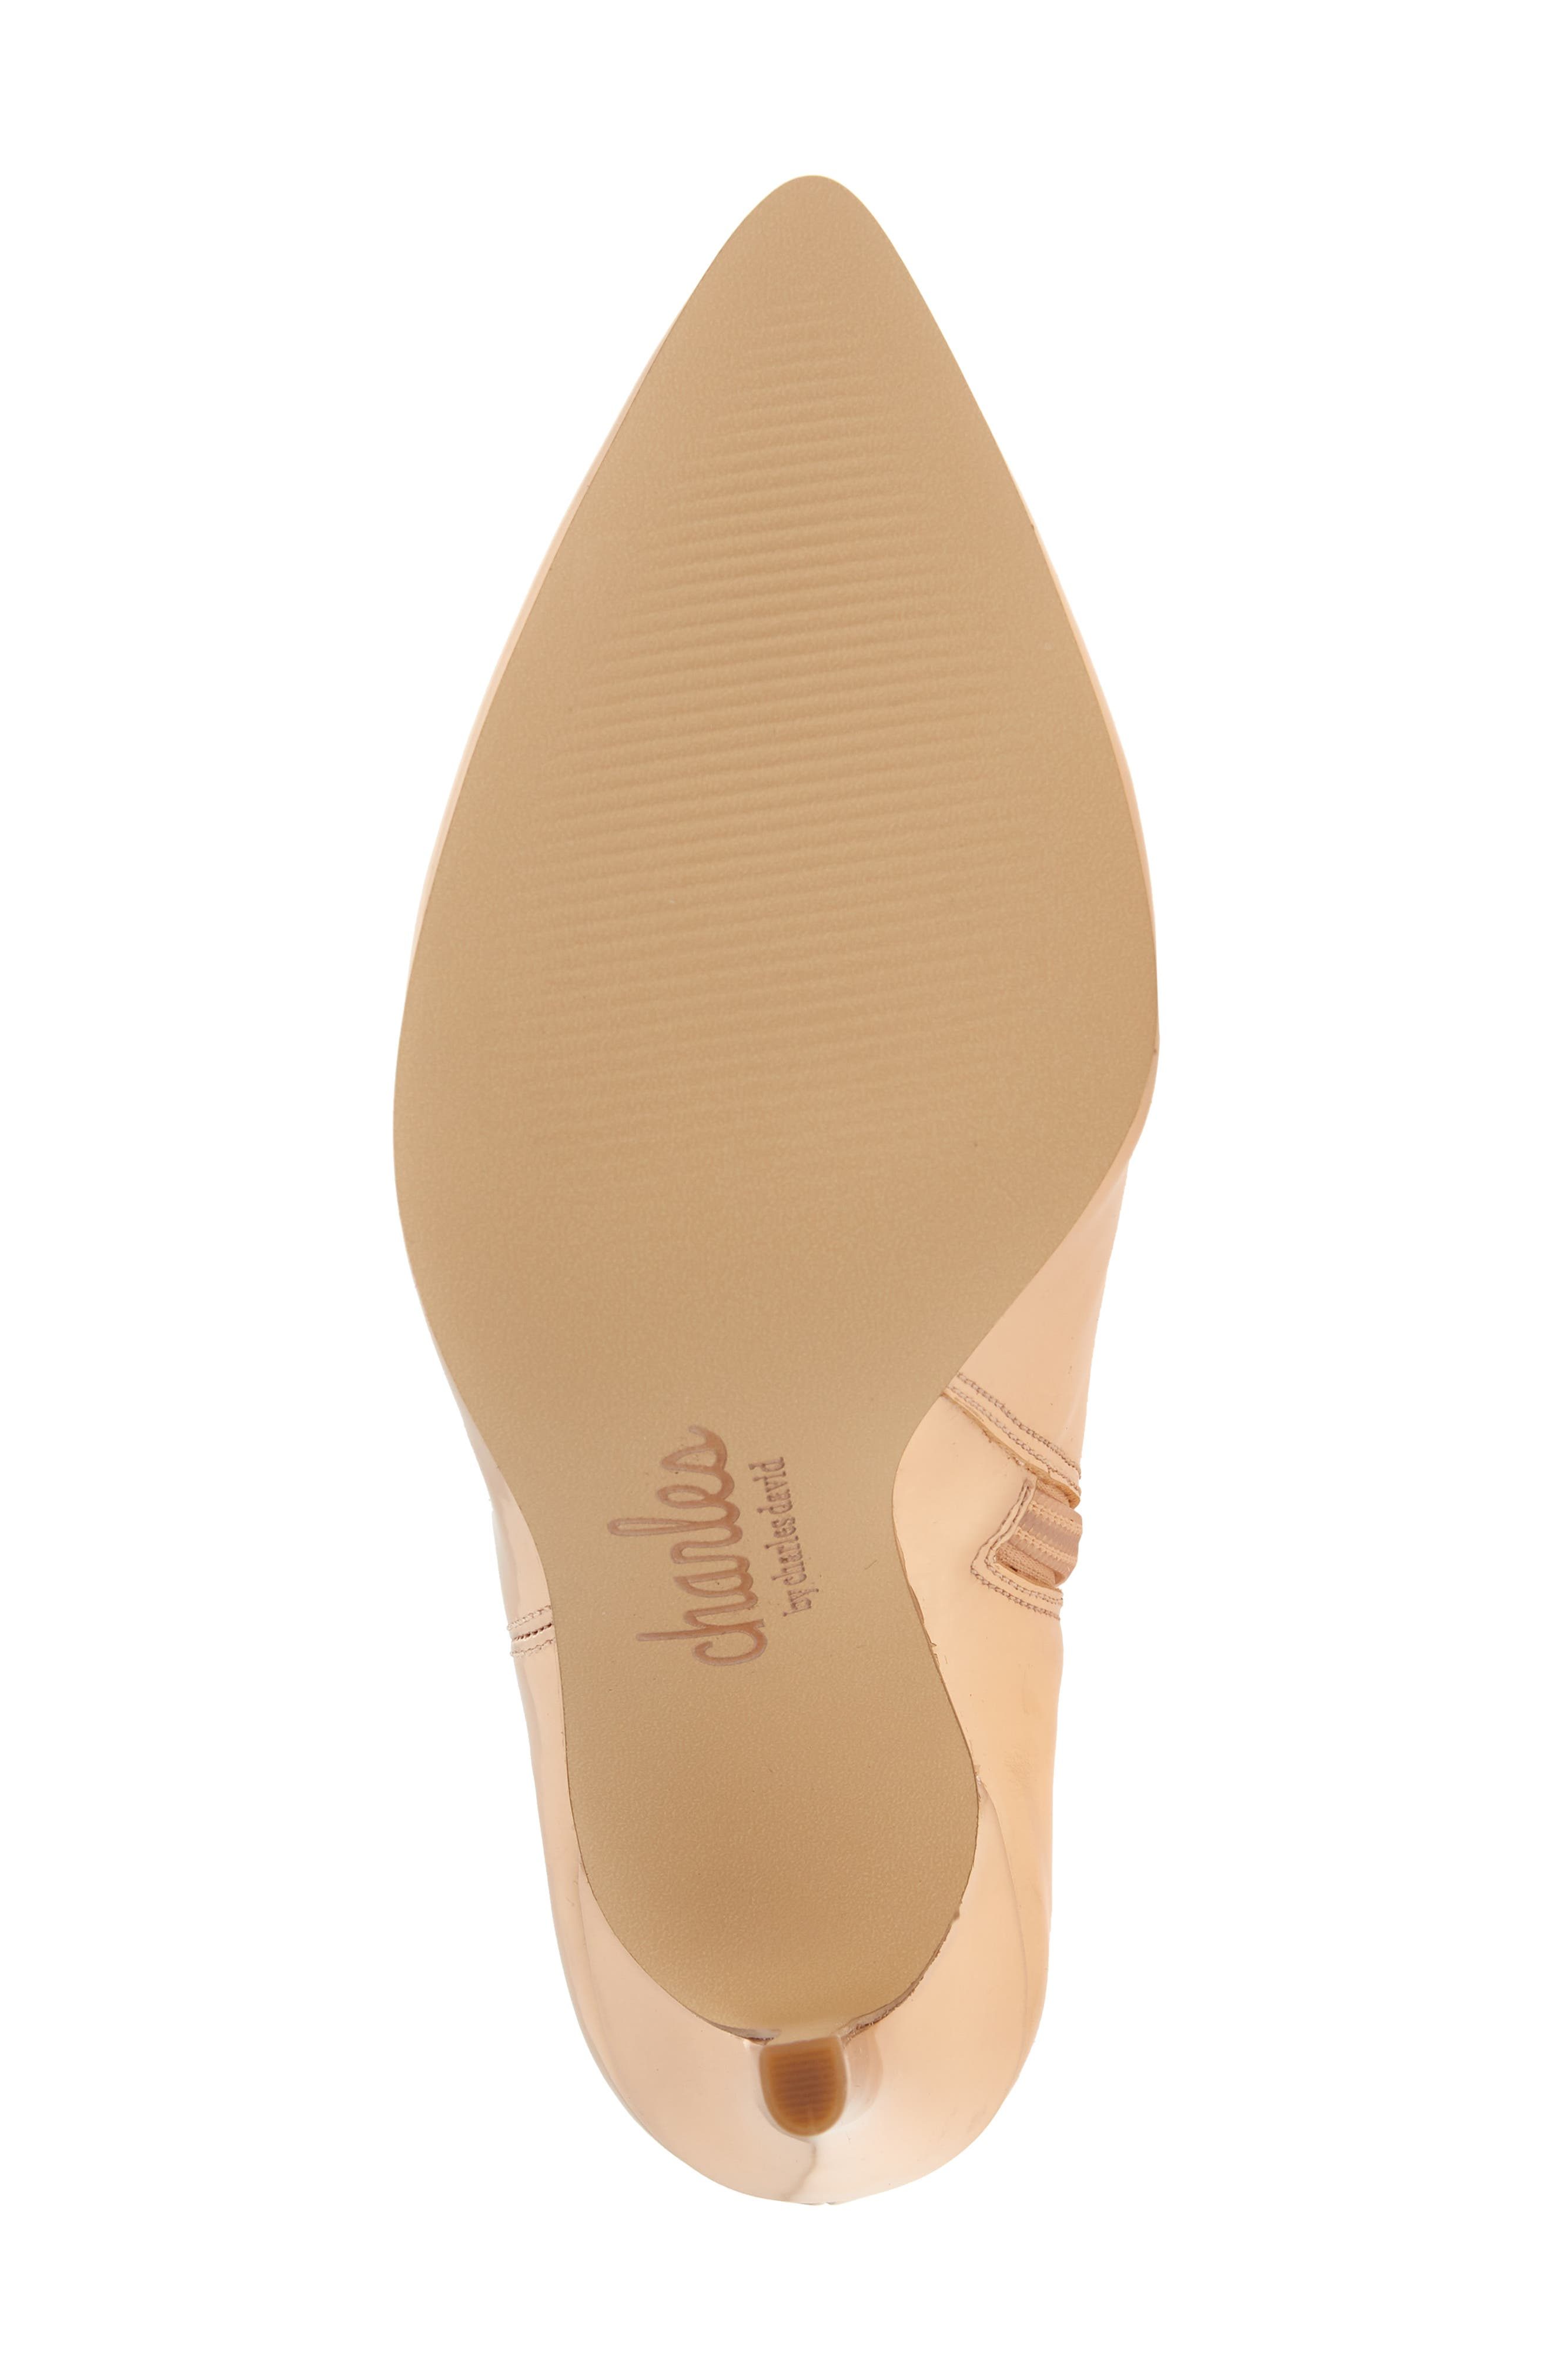 CHARLES BY CHARLES DAVID, Delicious Bootie, Alternate thumbnail 6, color, ROSE GOLD LEATHER